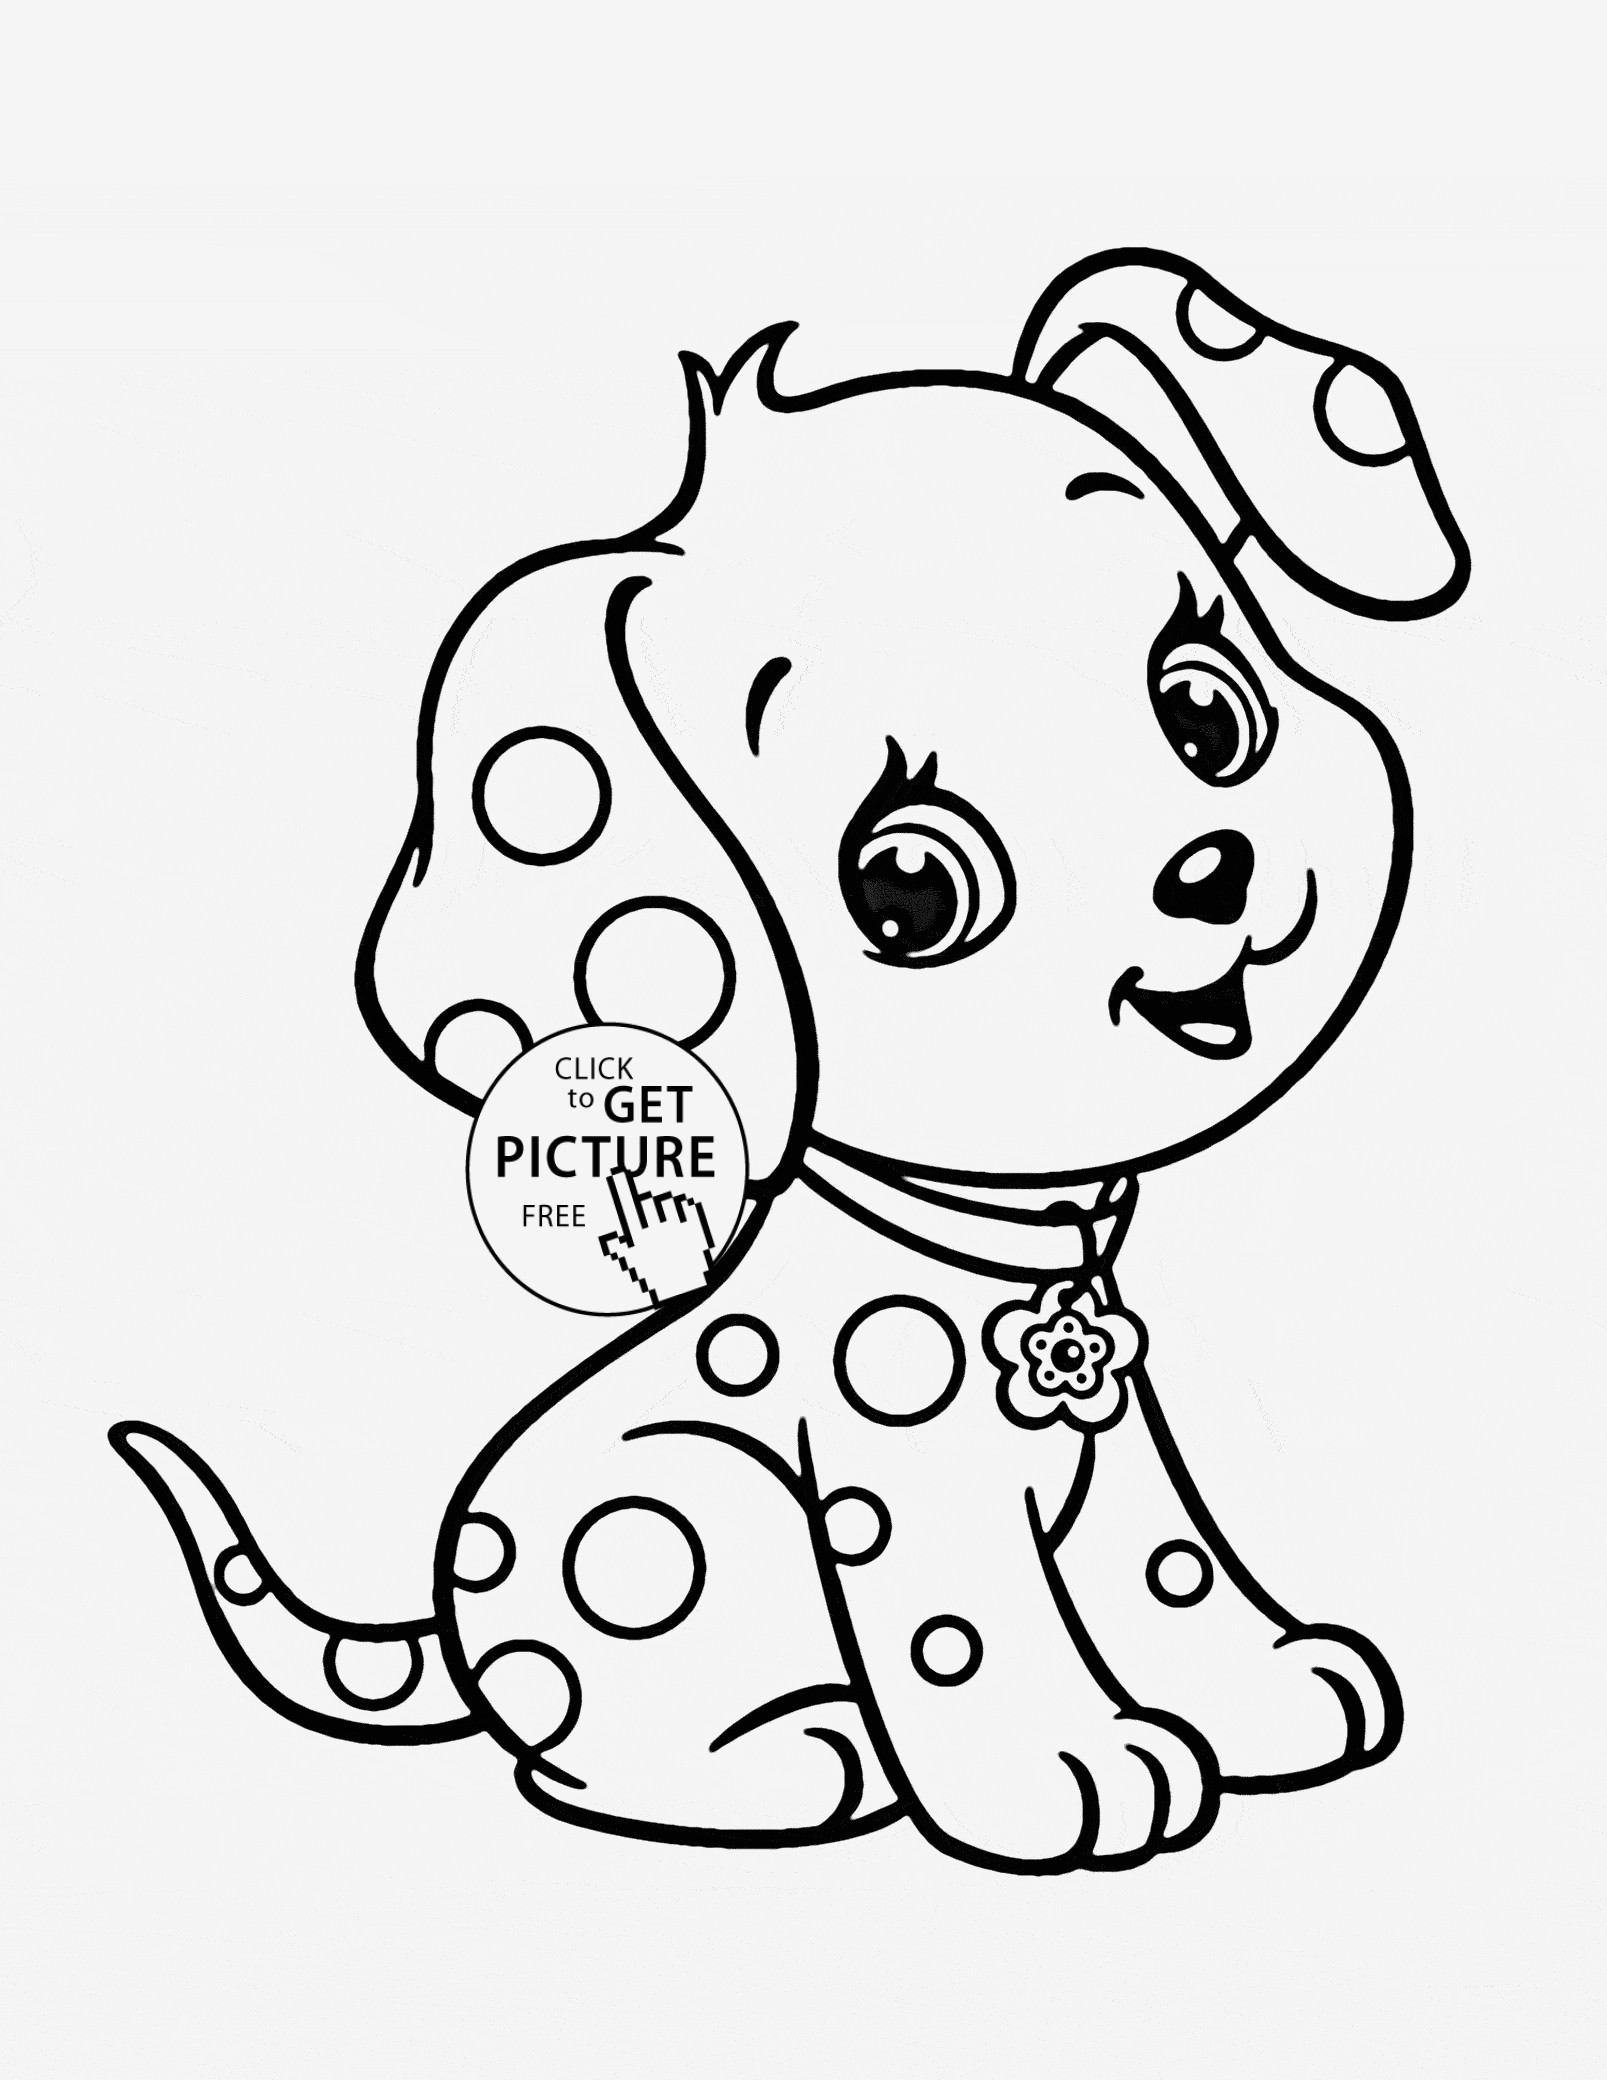 Ausmalbilder Zoo Inspirierend 29 Zoo Animals Printable Coloring Pages Download Coloring Das Bild